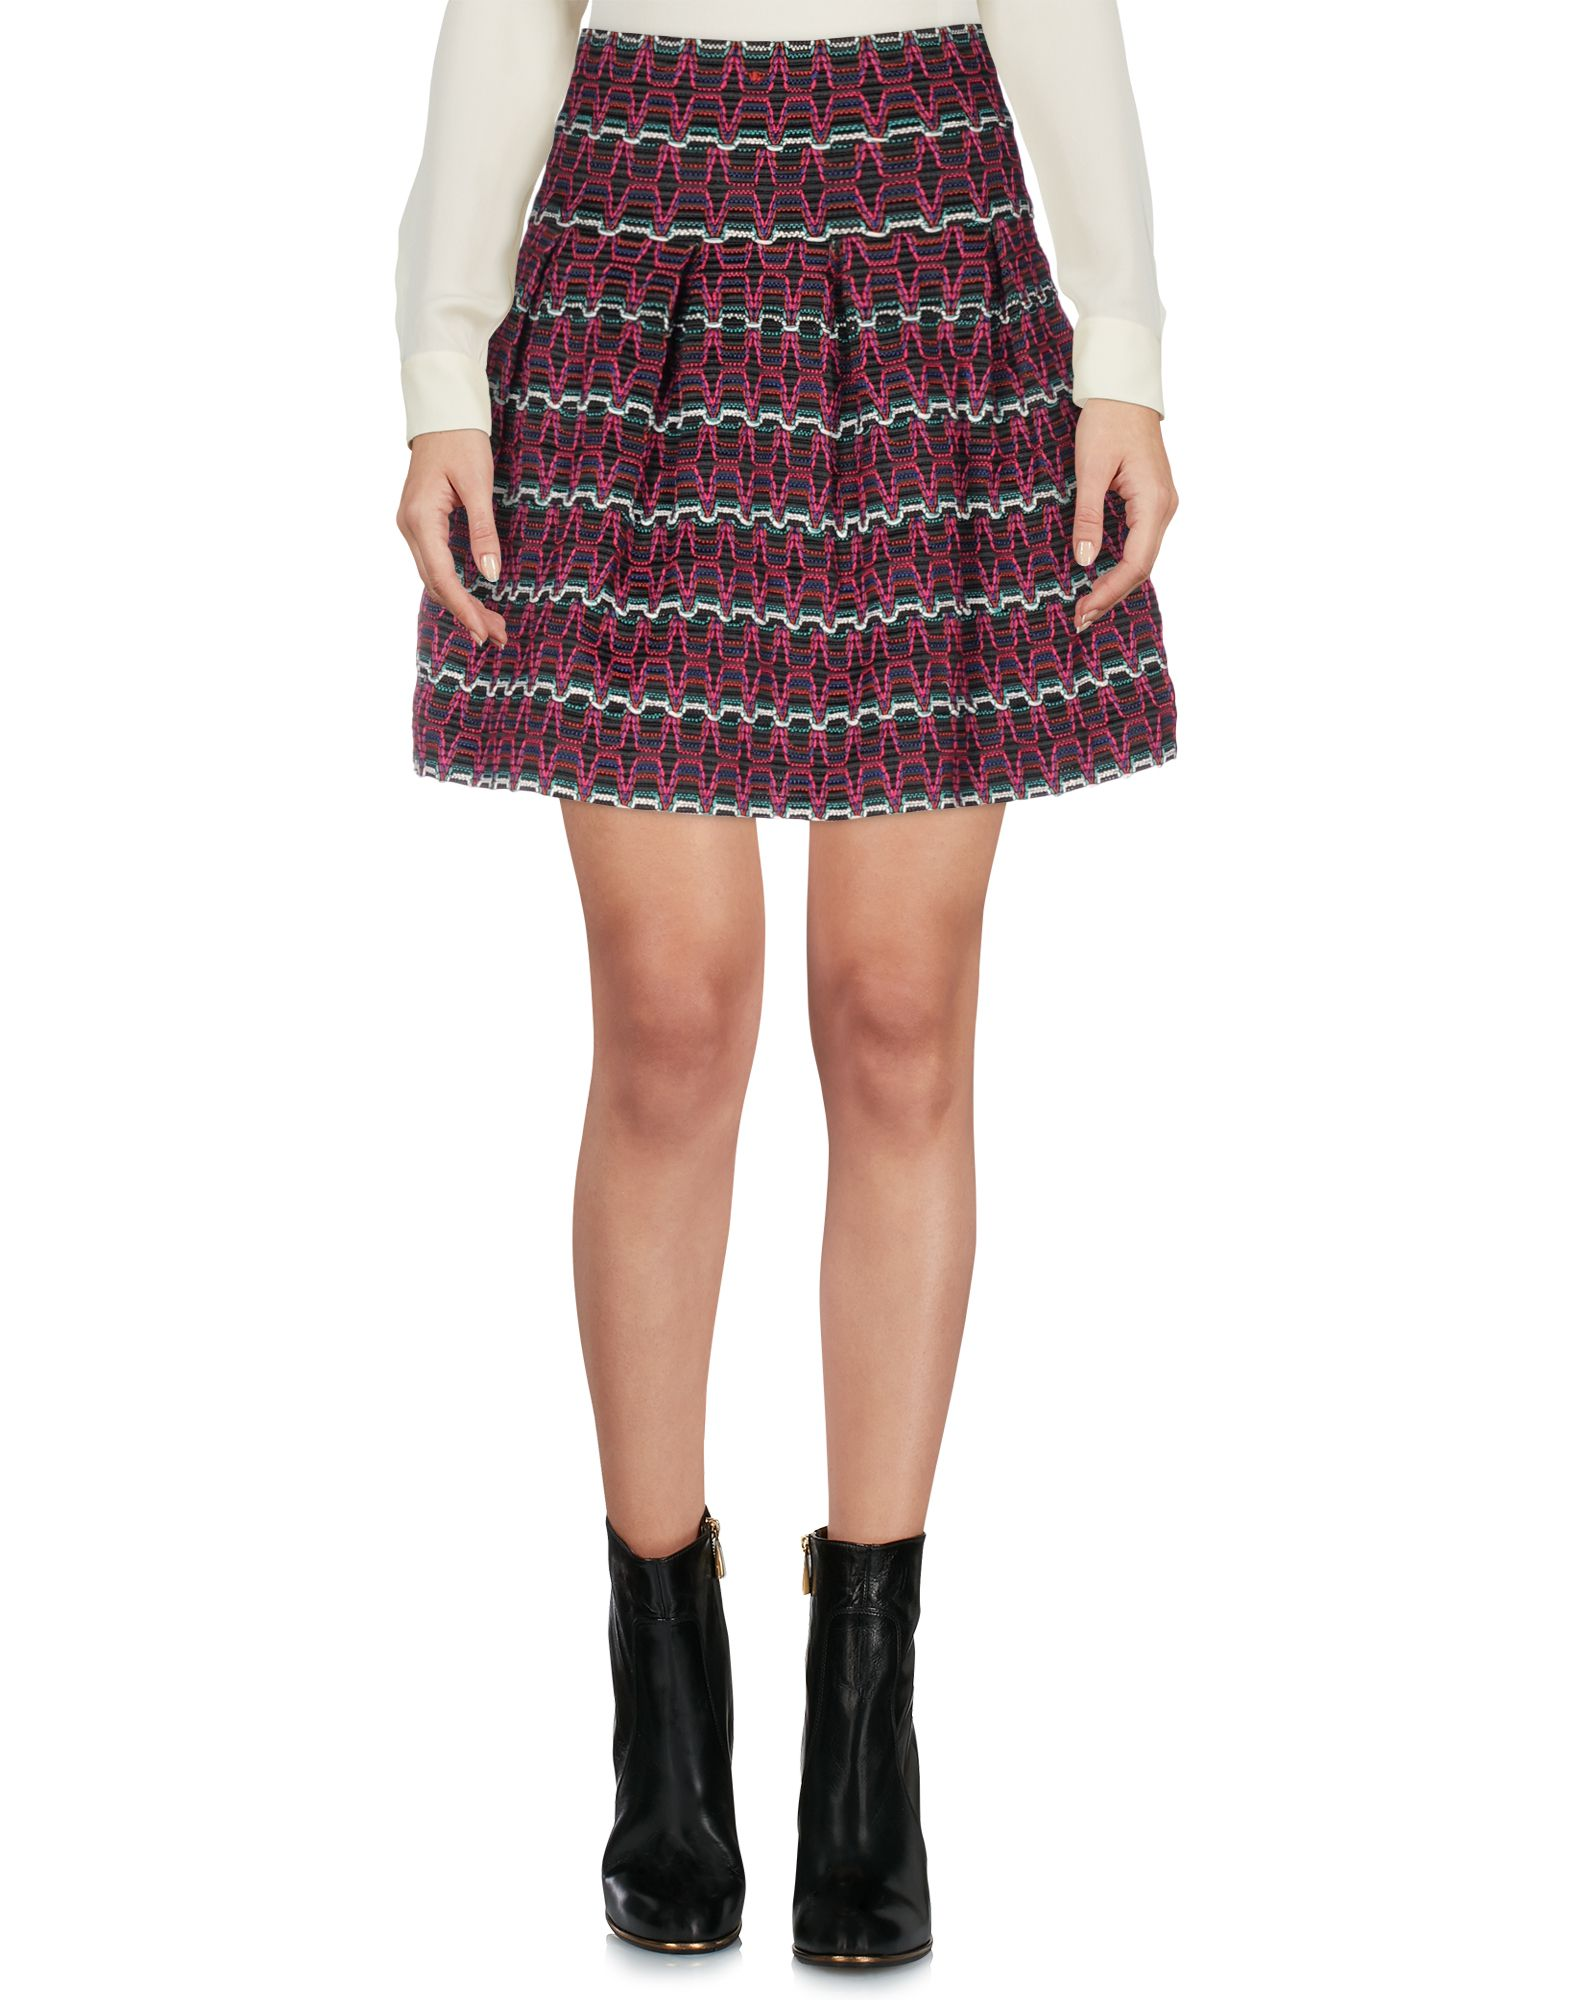 Lm lulu mini skirts shop at ebates for Robe lm lulu